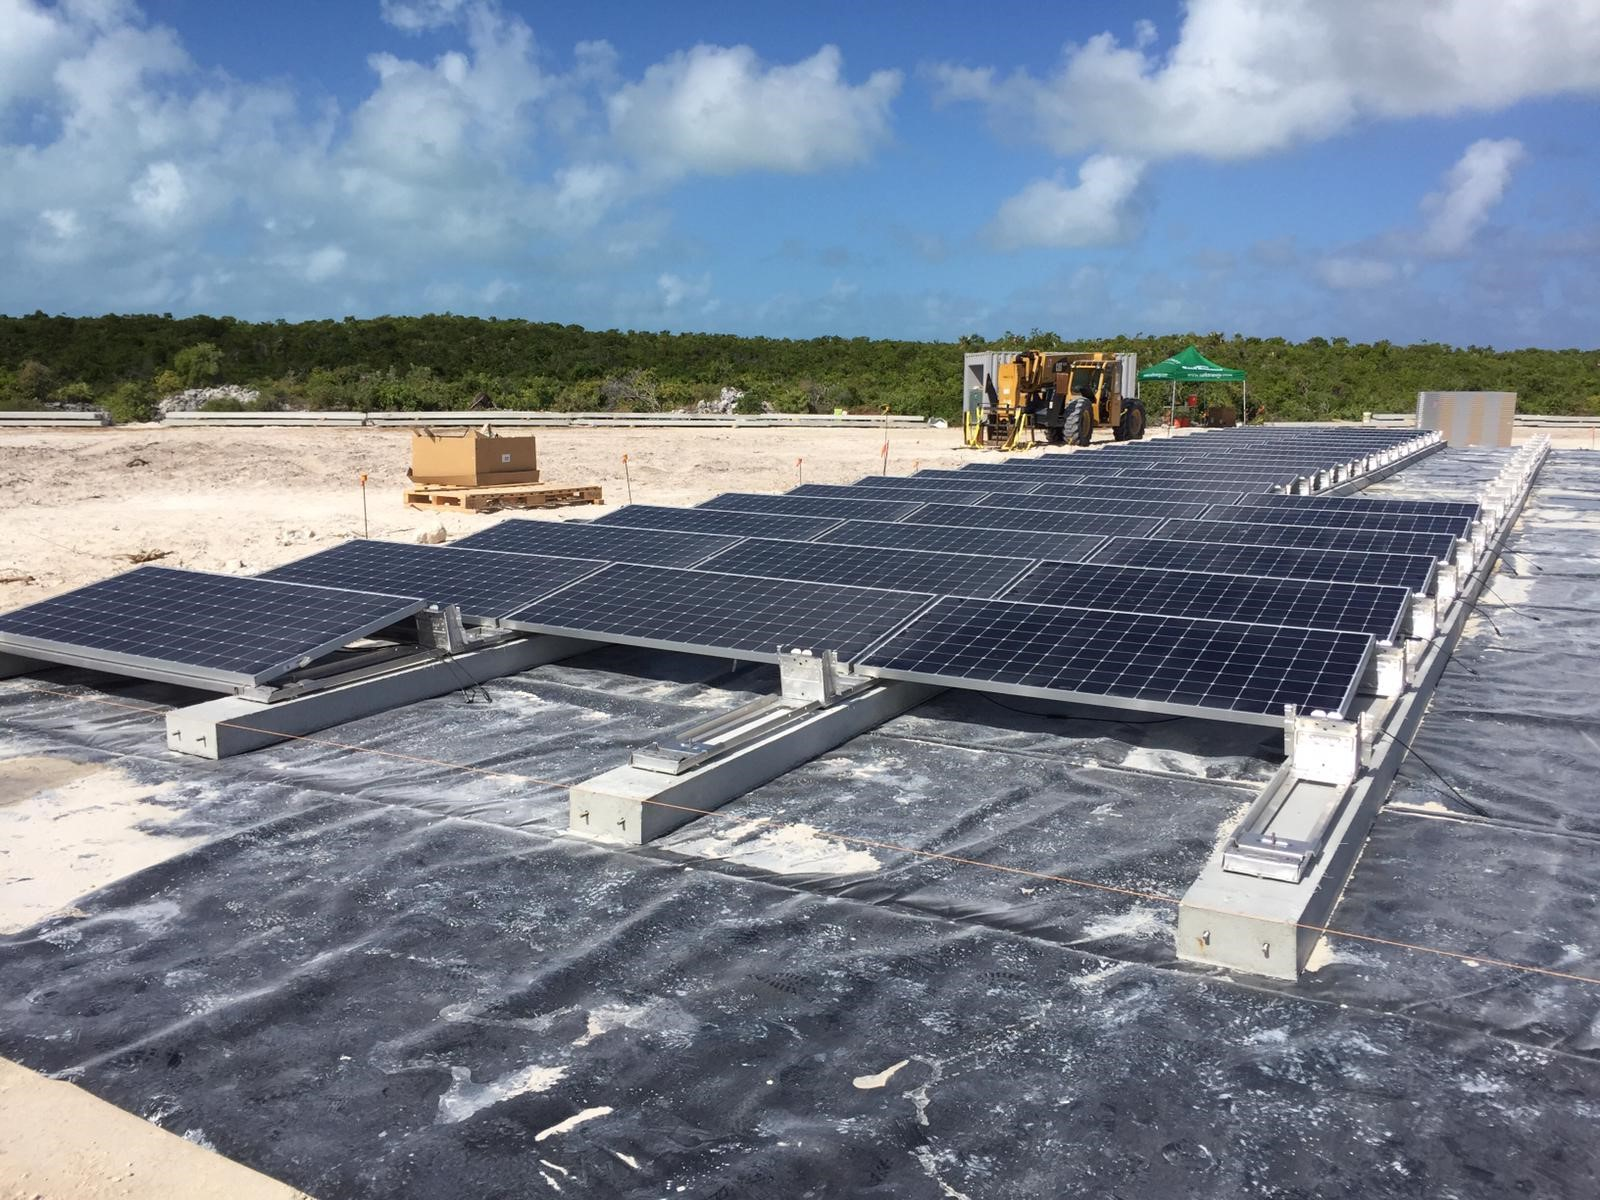 Microgrid project awarded in the Bahamas